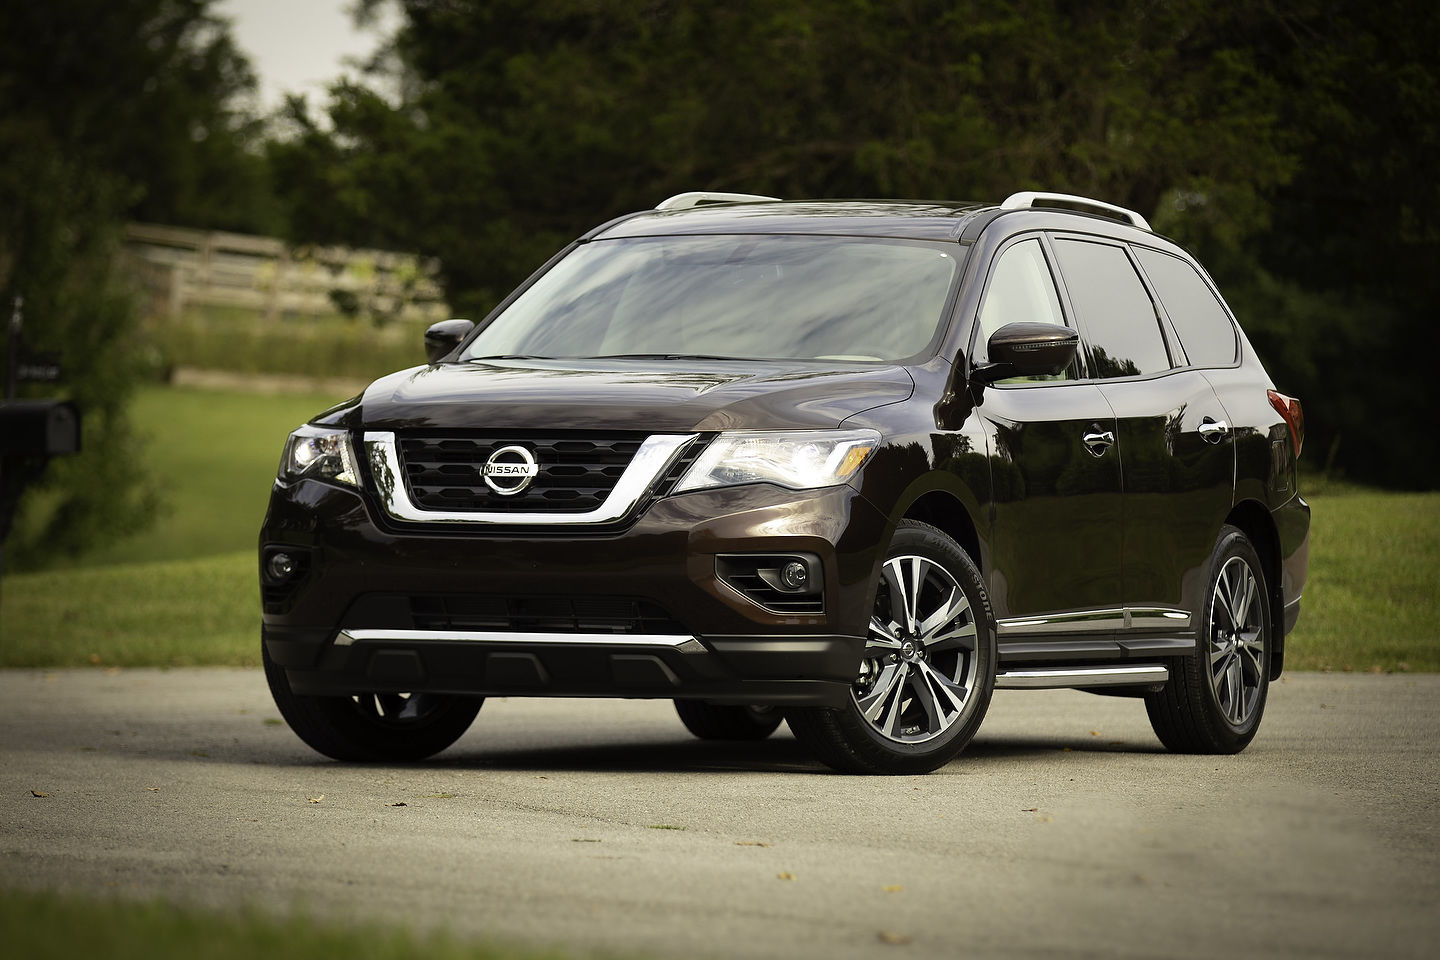 Safety and power with the 2019 Nissan Pathfinder